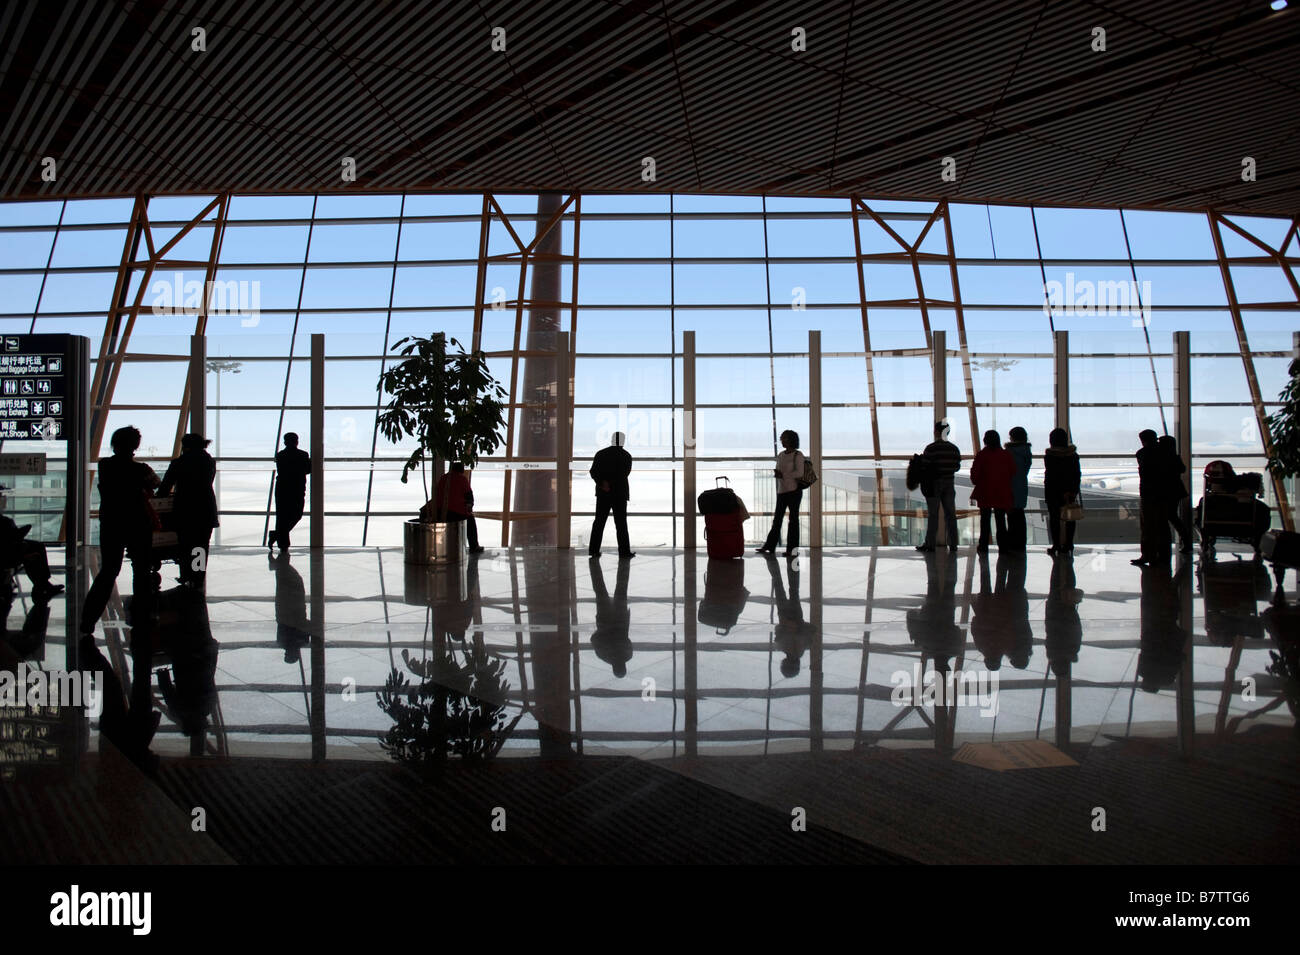 Passengers in new terminal 3 building at Beijing Airport China 2009 - Stock Image